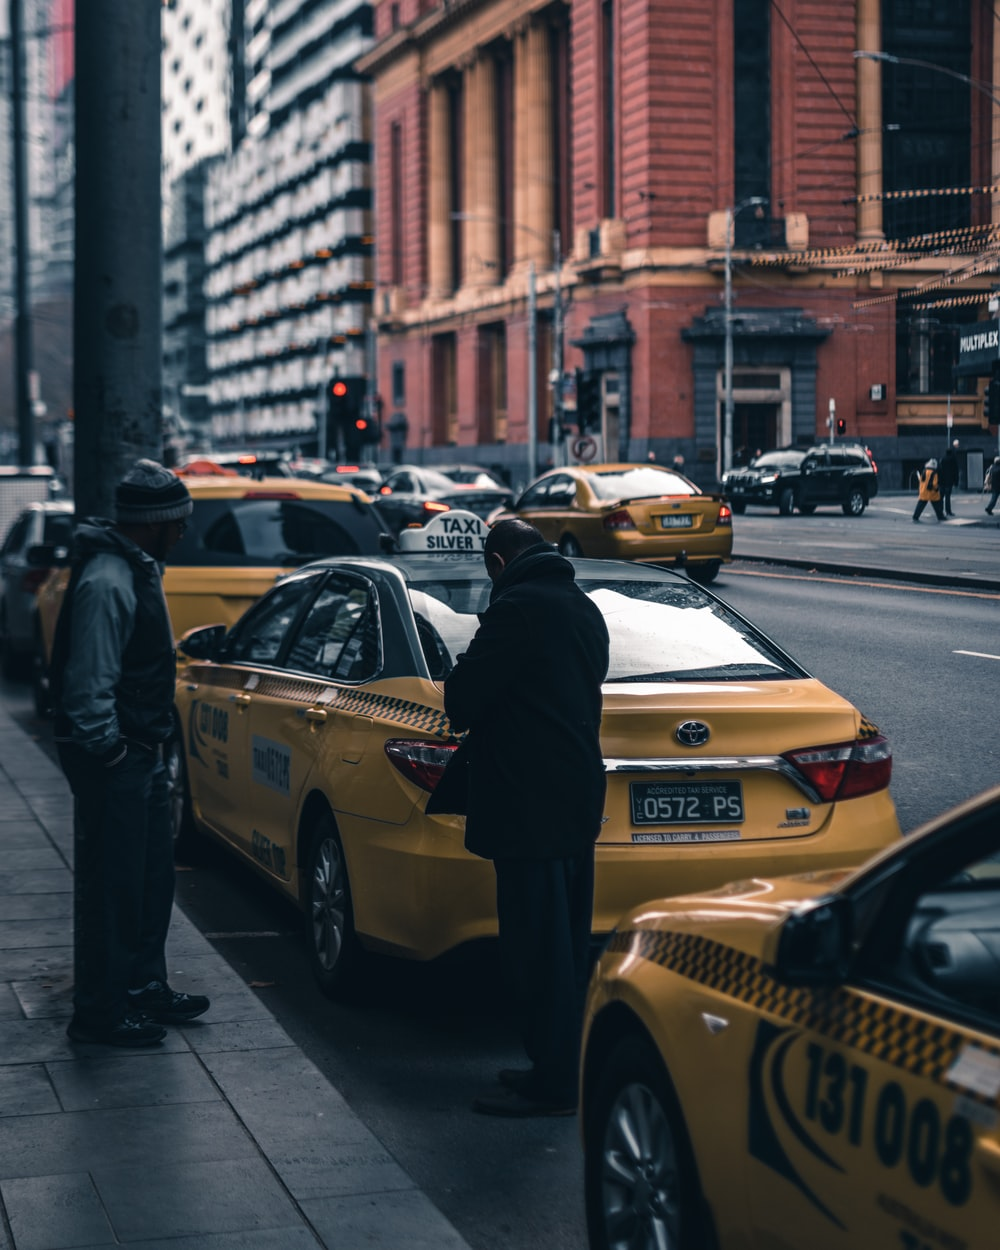 person wearing black trench coat standing on yellow cab